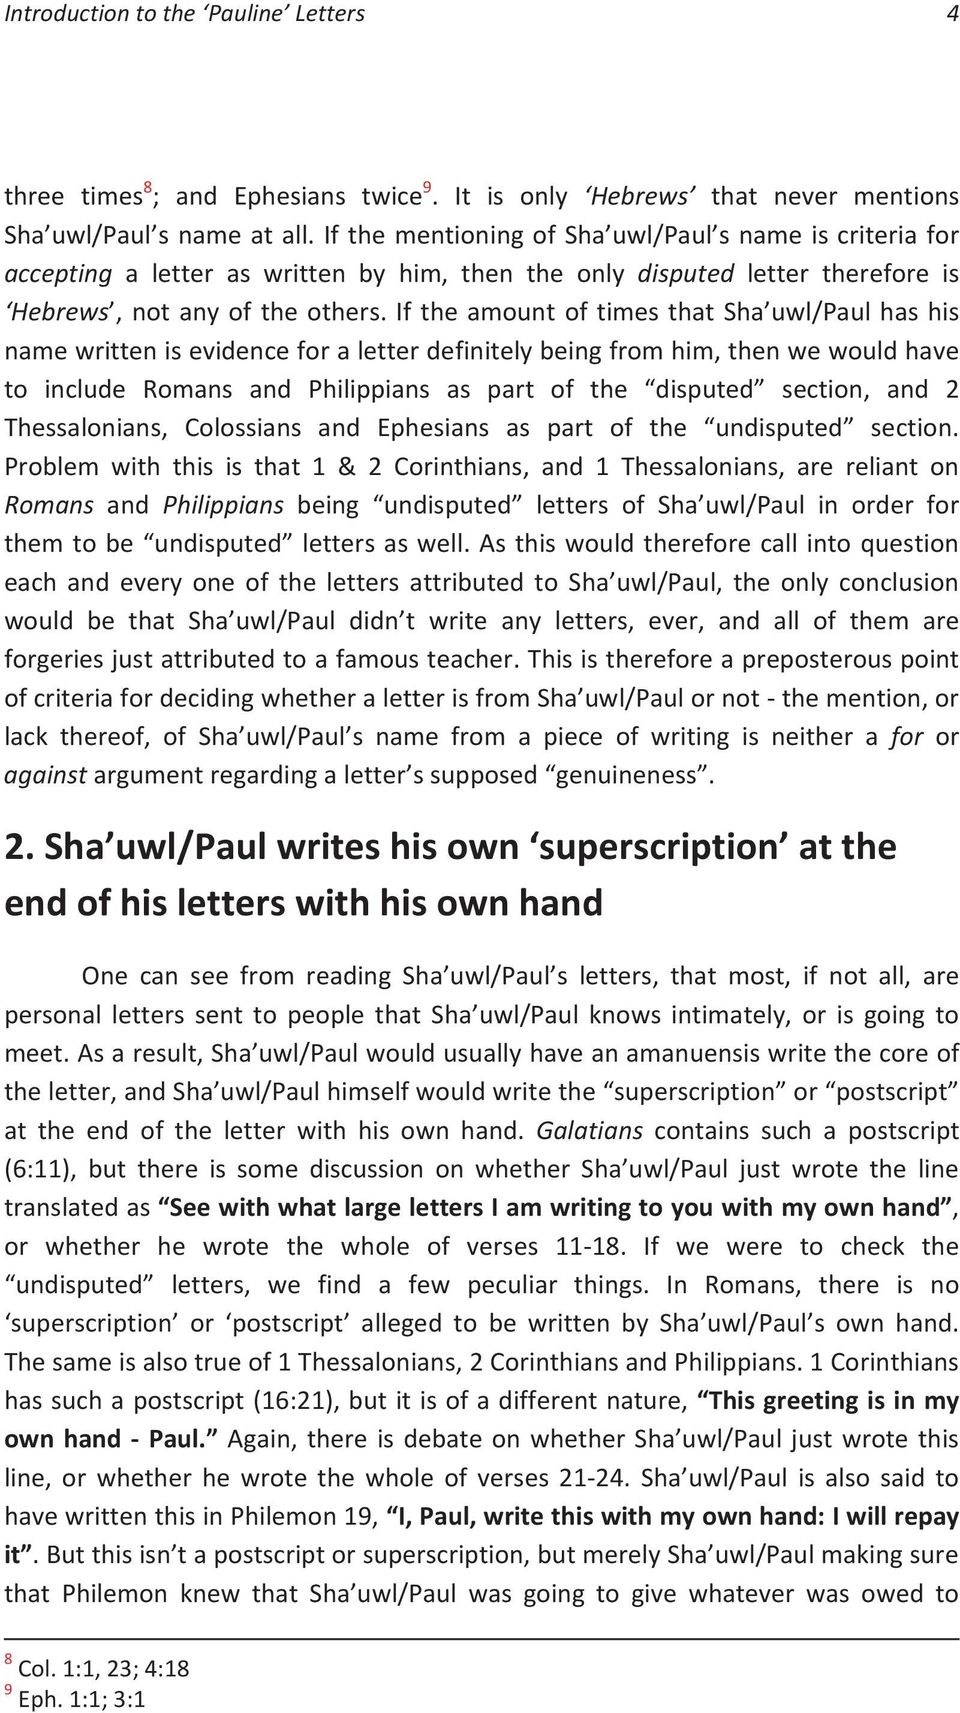 If the amount of times that Sha uwl/paul has his name written is evidence for a letter definitely being from him, then we would have to include Romans and Philippians as part of the disputed section,